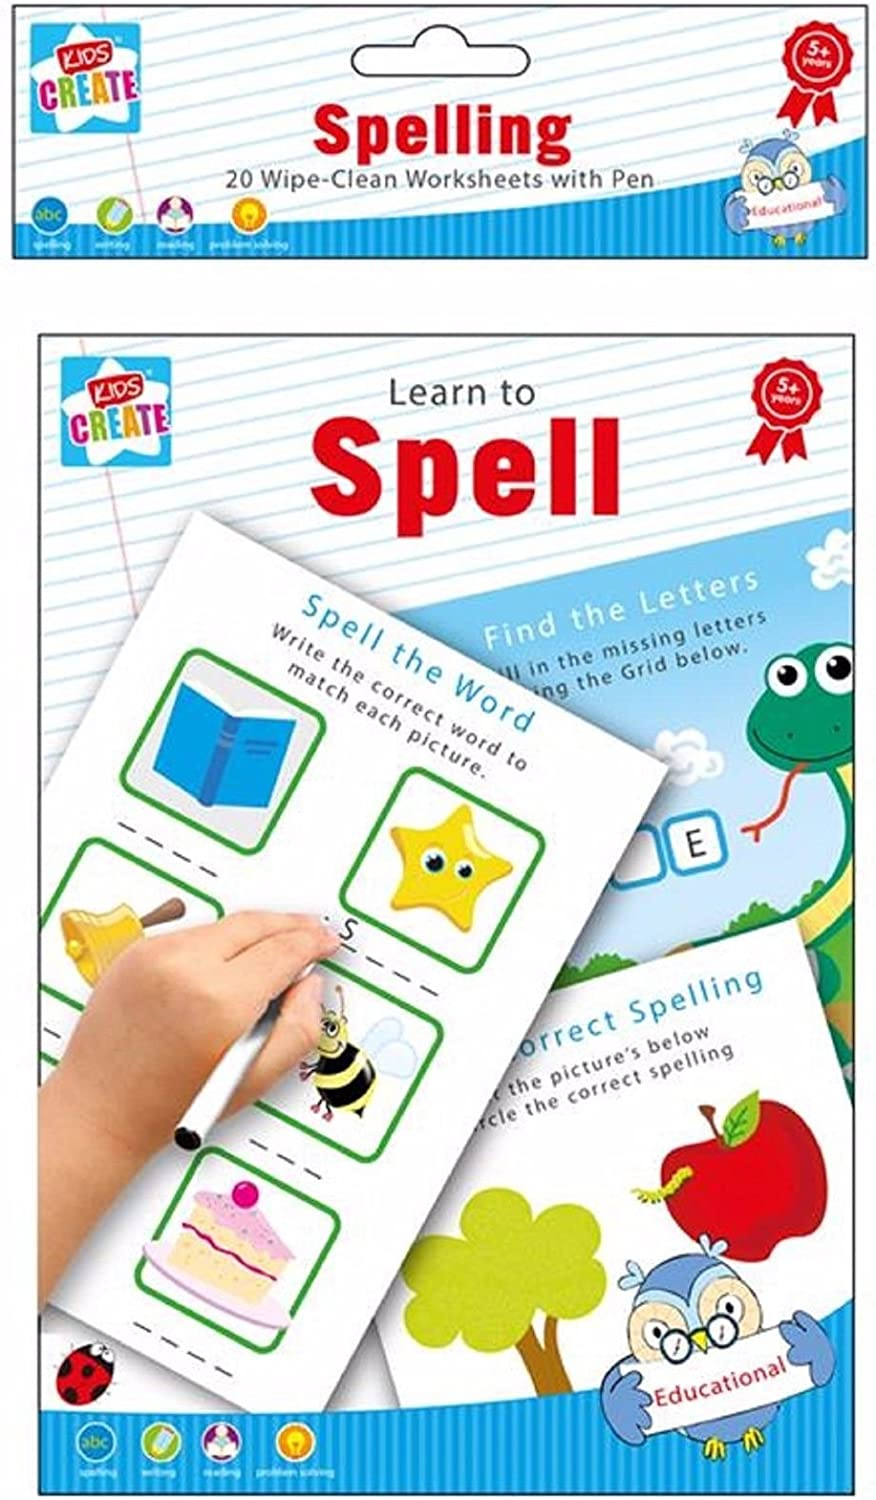 - Amazon.com : Learn To Spell - Spelling Writing & Reading 20 Wipe